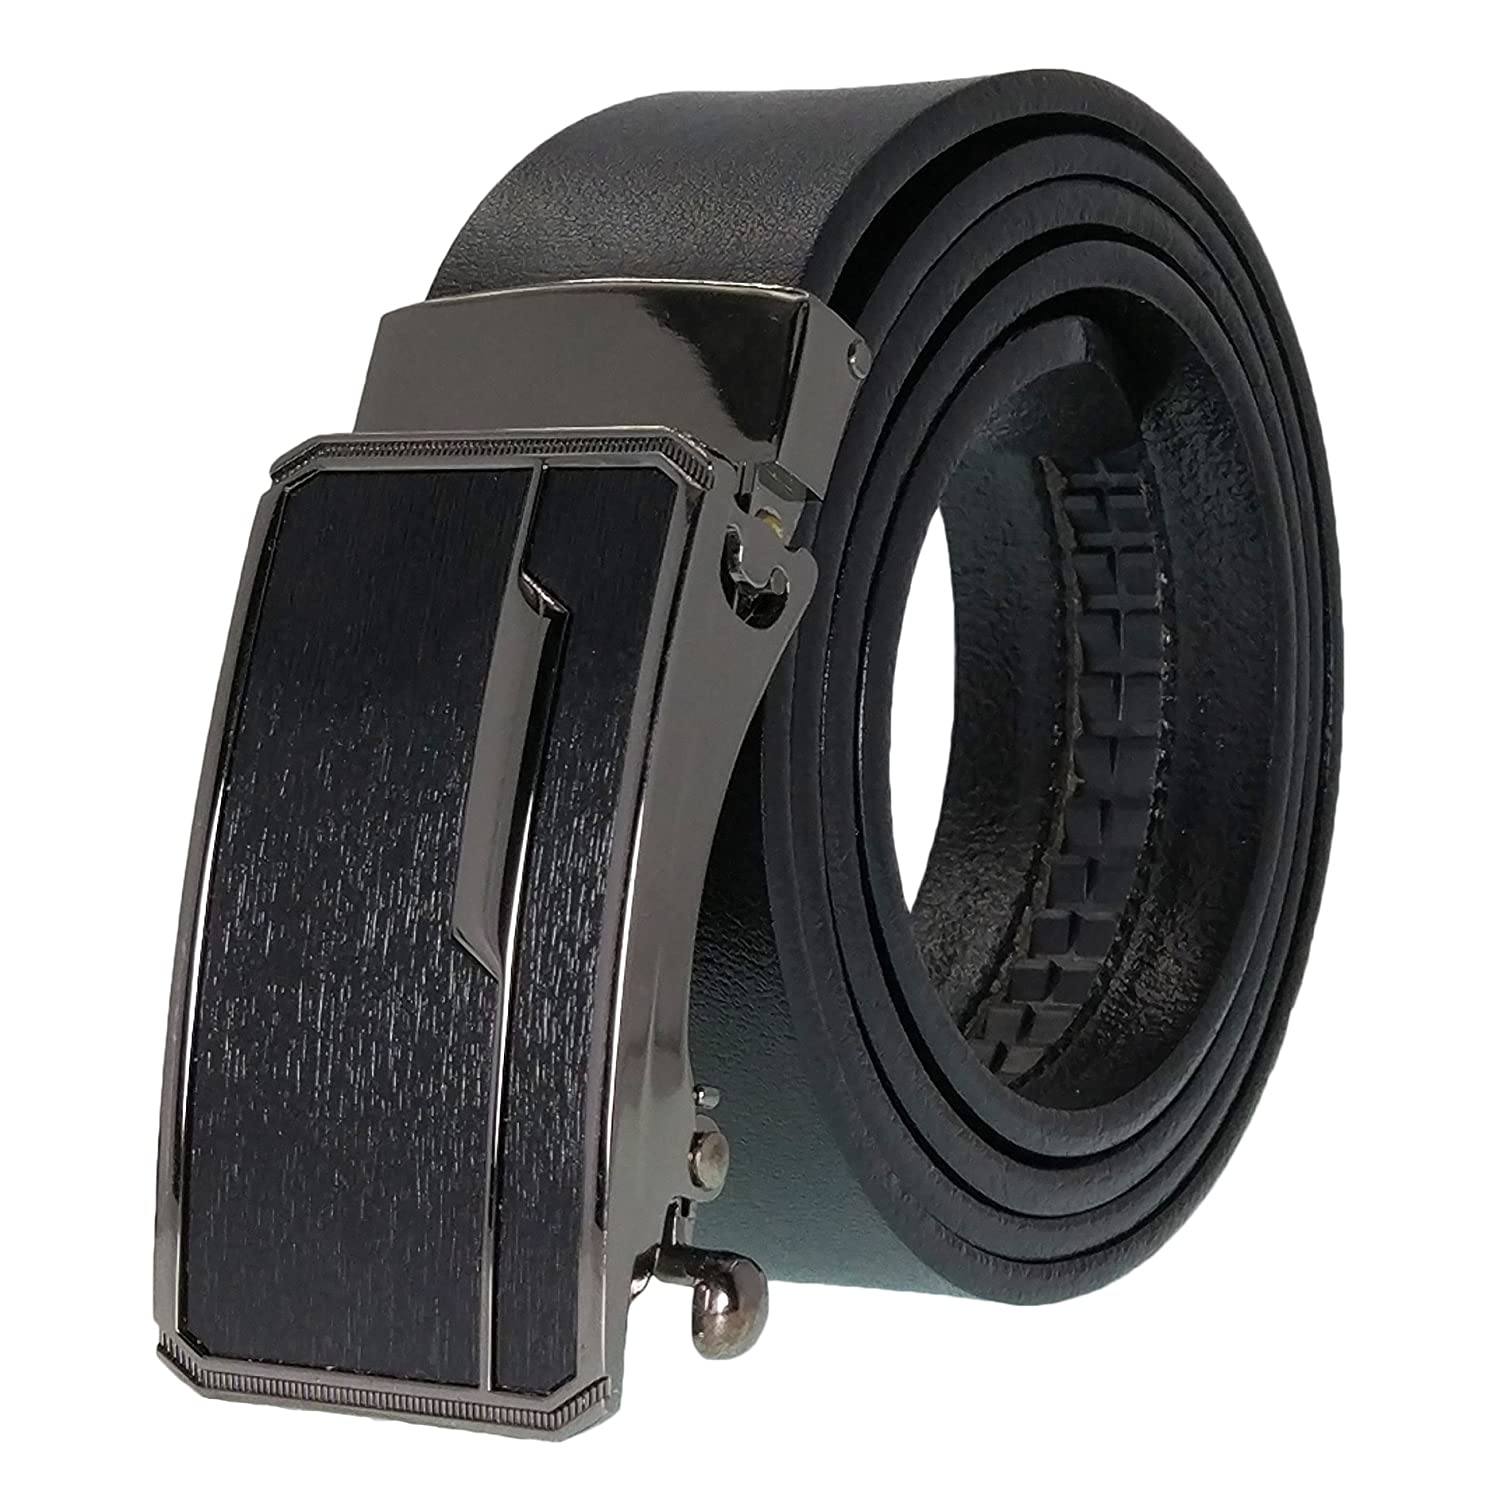 Men's Belt,West Leathers Slide Ratchet Belt for Men with Genuine Leather,Trim to Fit Men's Belt Lbelt-5-1-42